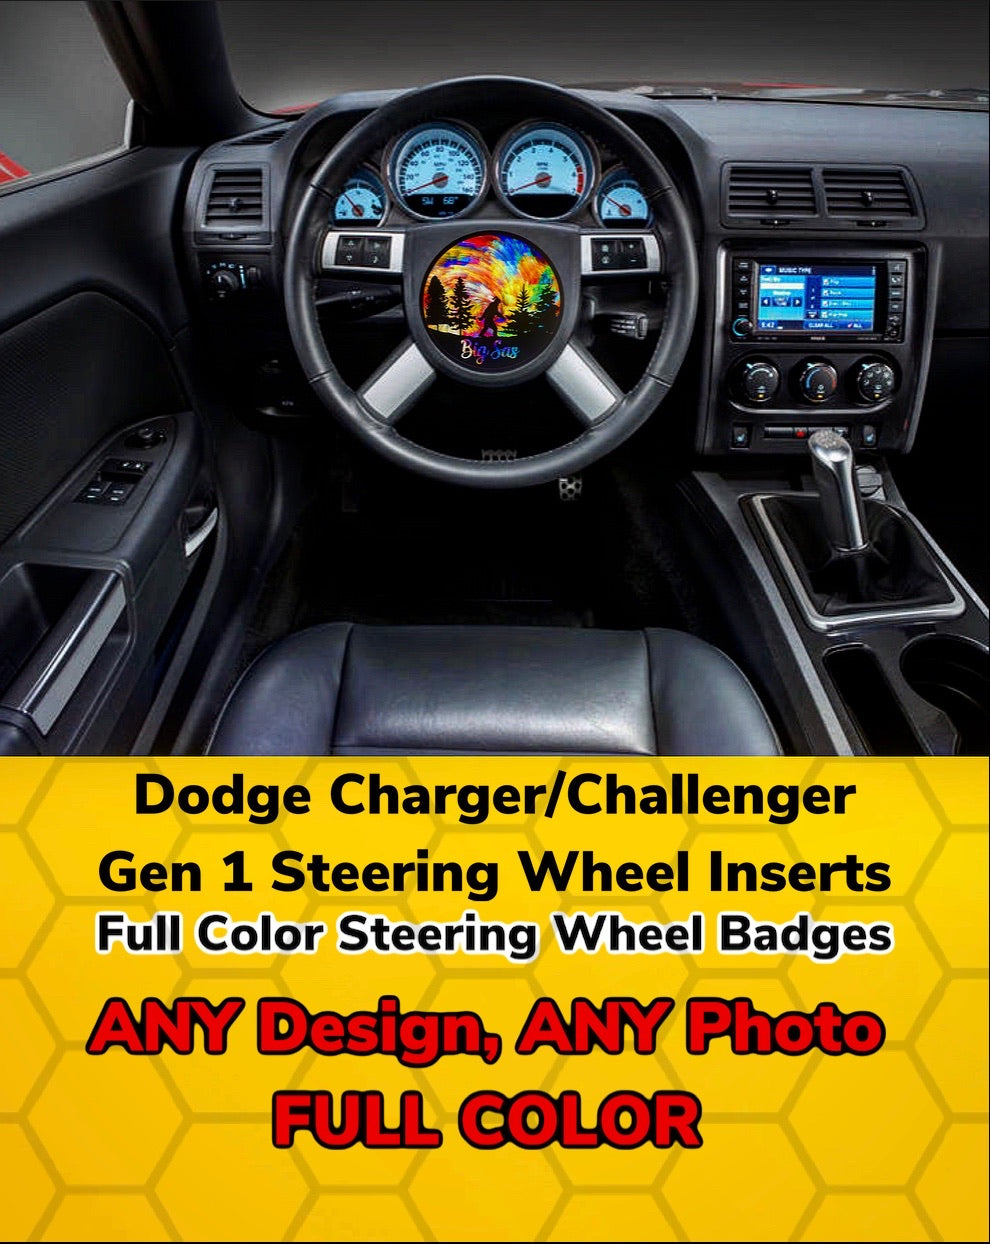 2006-2010 Charger/Challenger Steering Wheel Insert - Forged Concepts